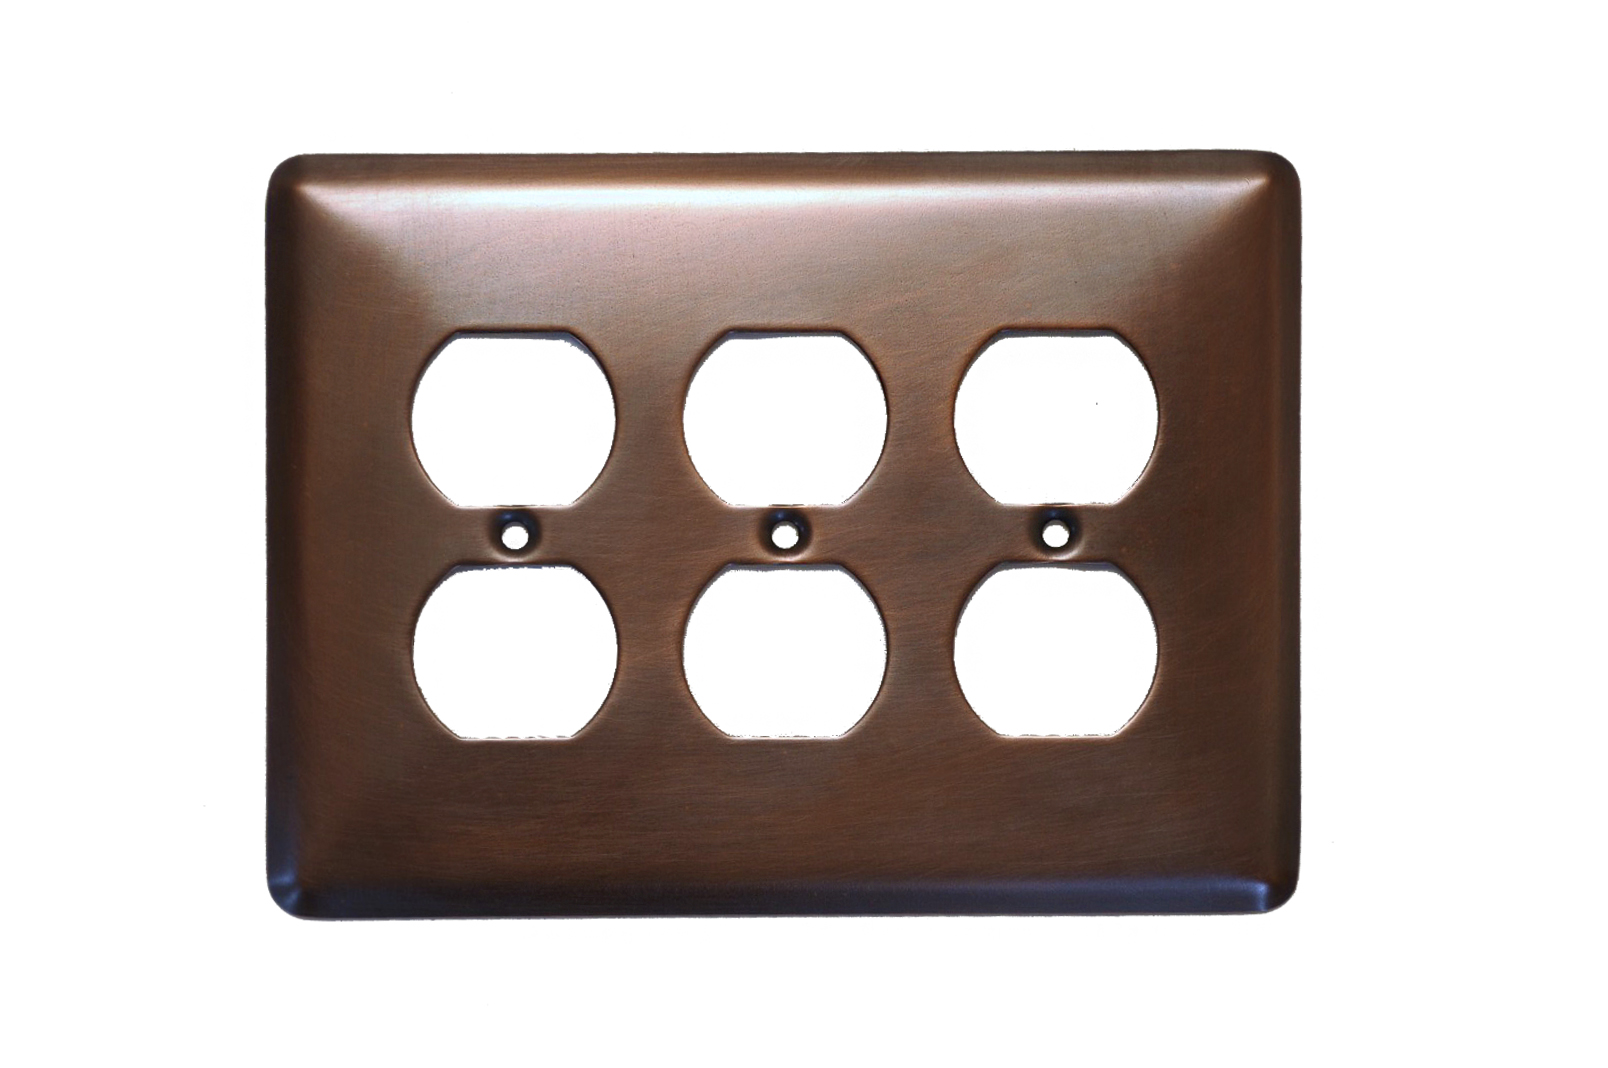 Picture of 1-5 gang Duplex Outlet Copper Plate Cover